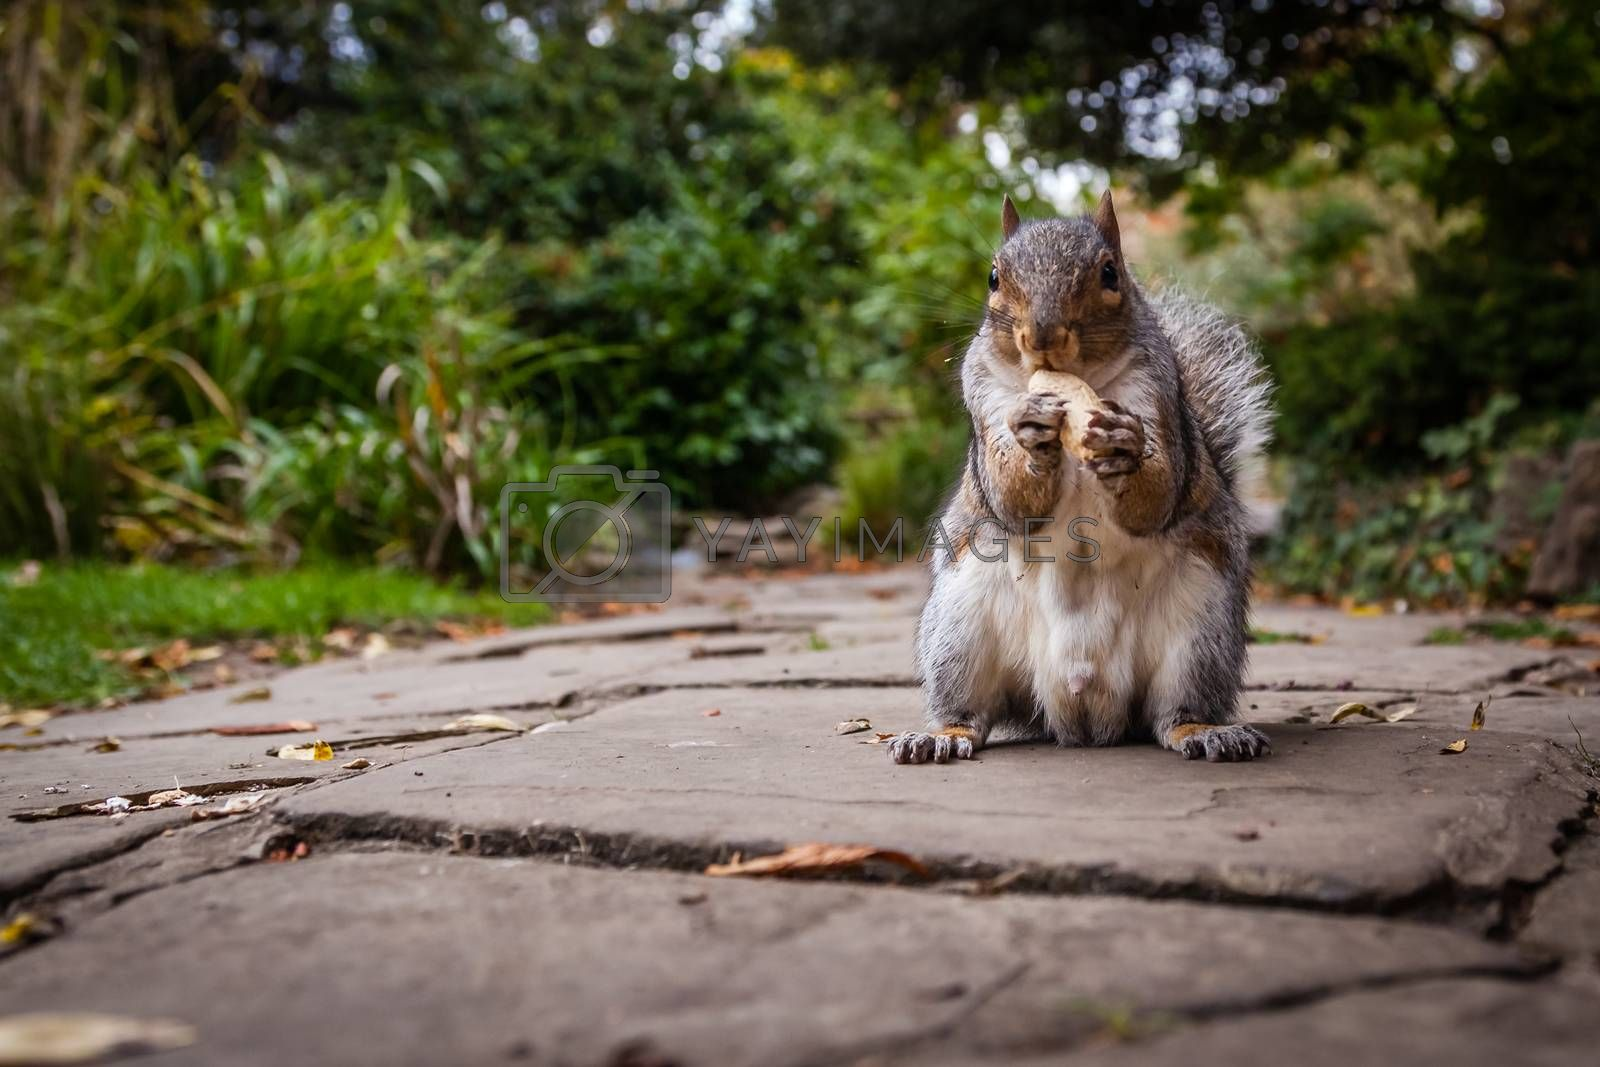 Close up of a grey squirrel eating a nut